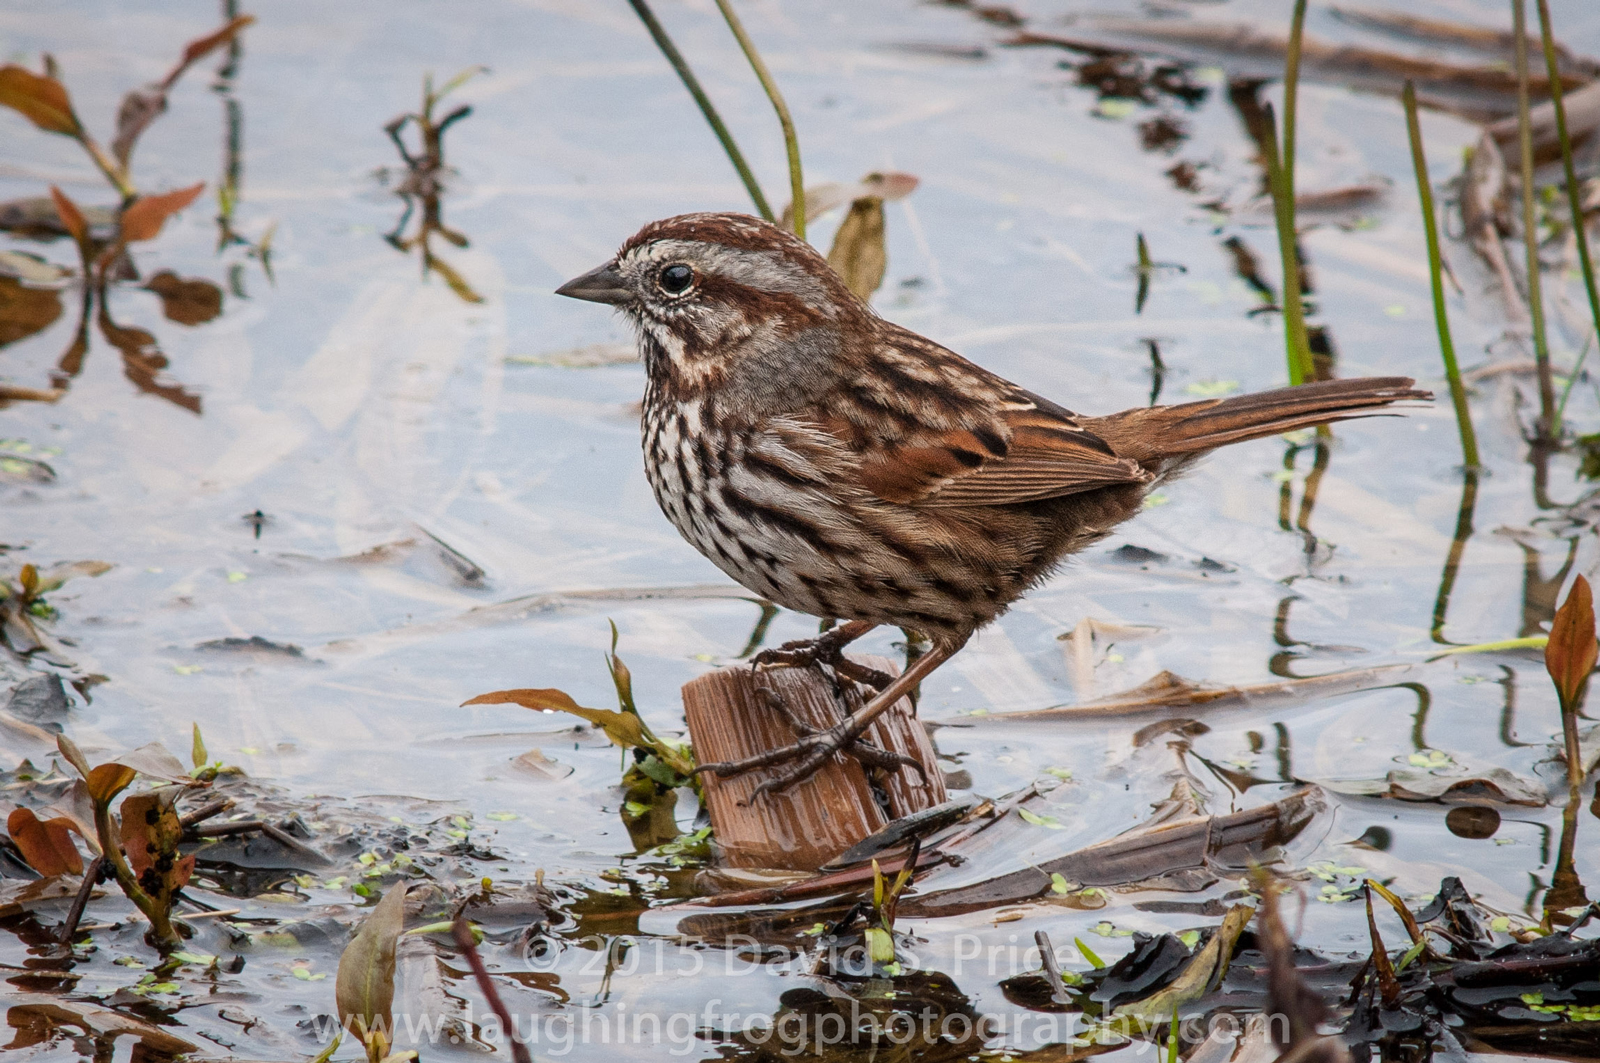 Song Sparrow, Humboldt, 2014 February